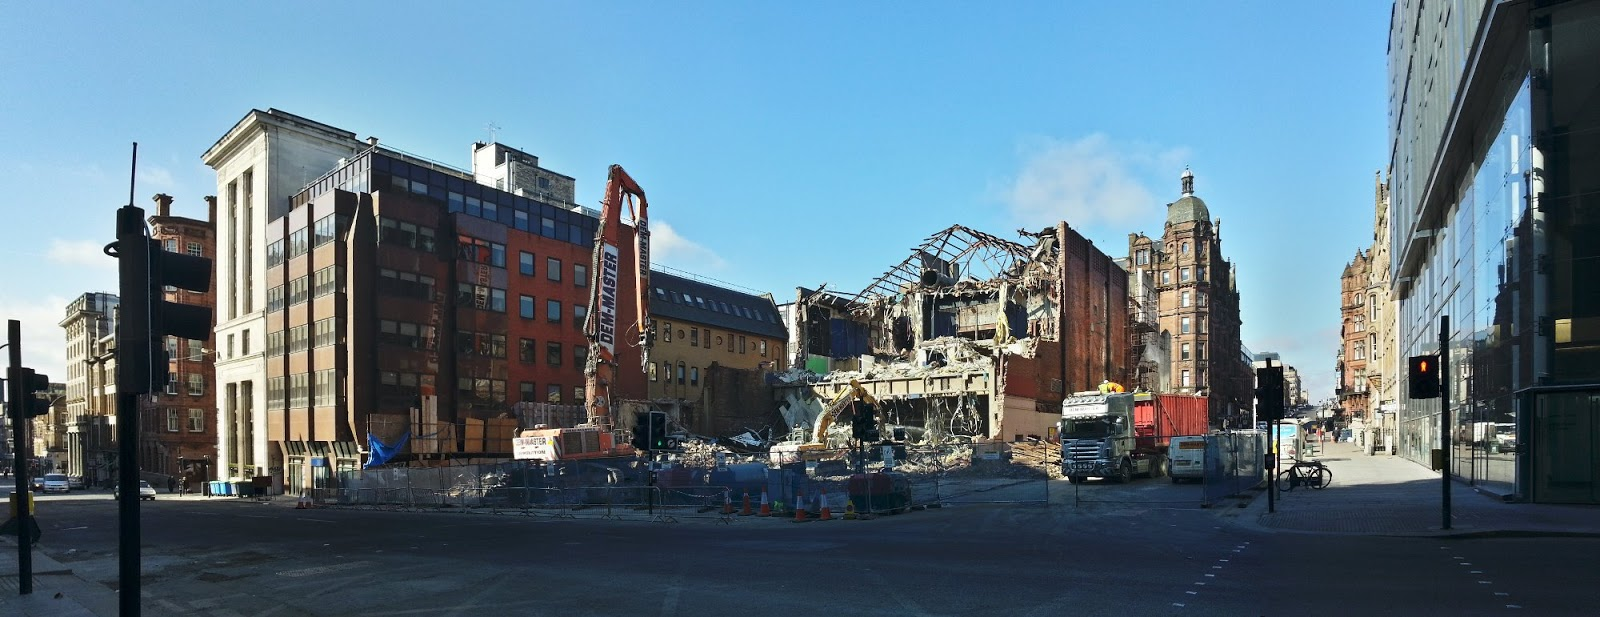 Odeon demolished, Glasgow